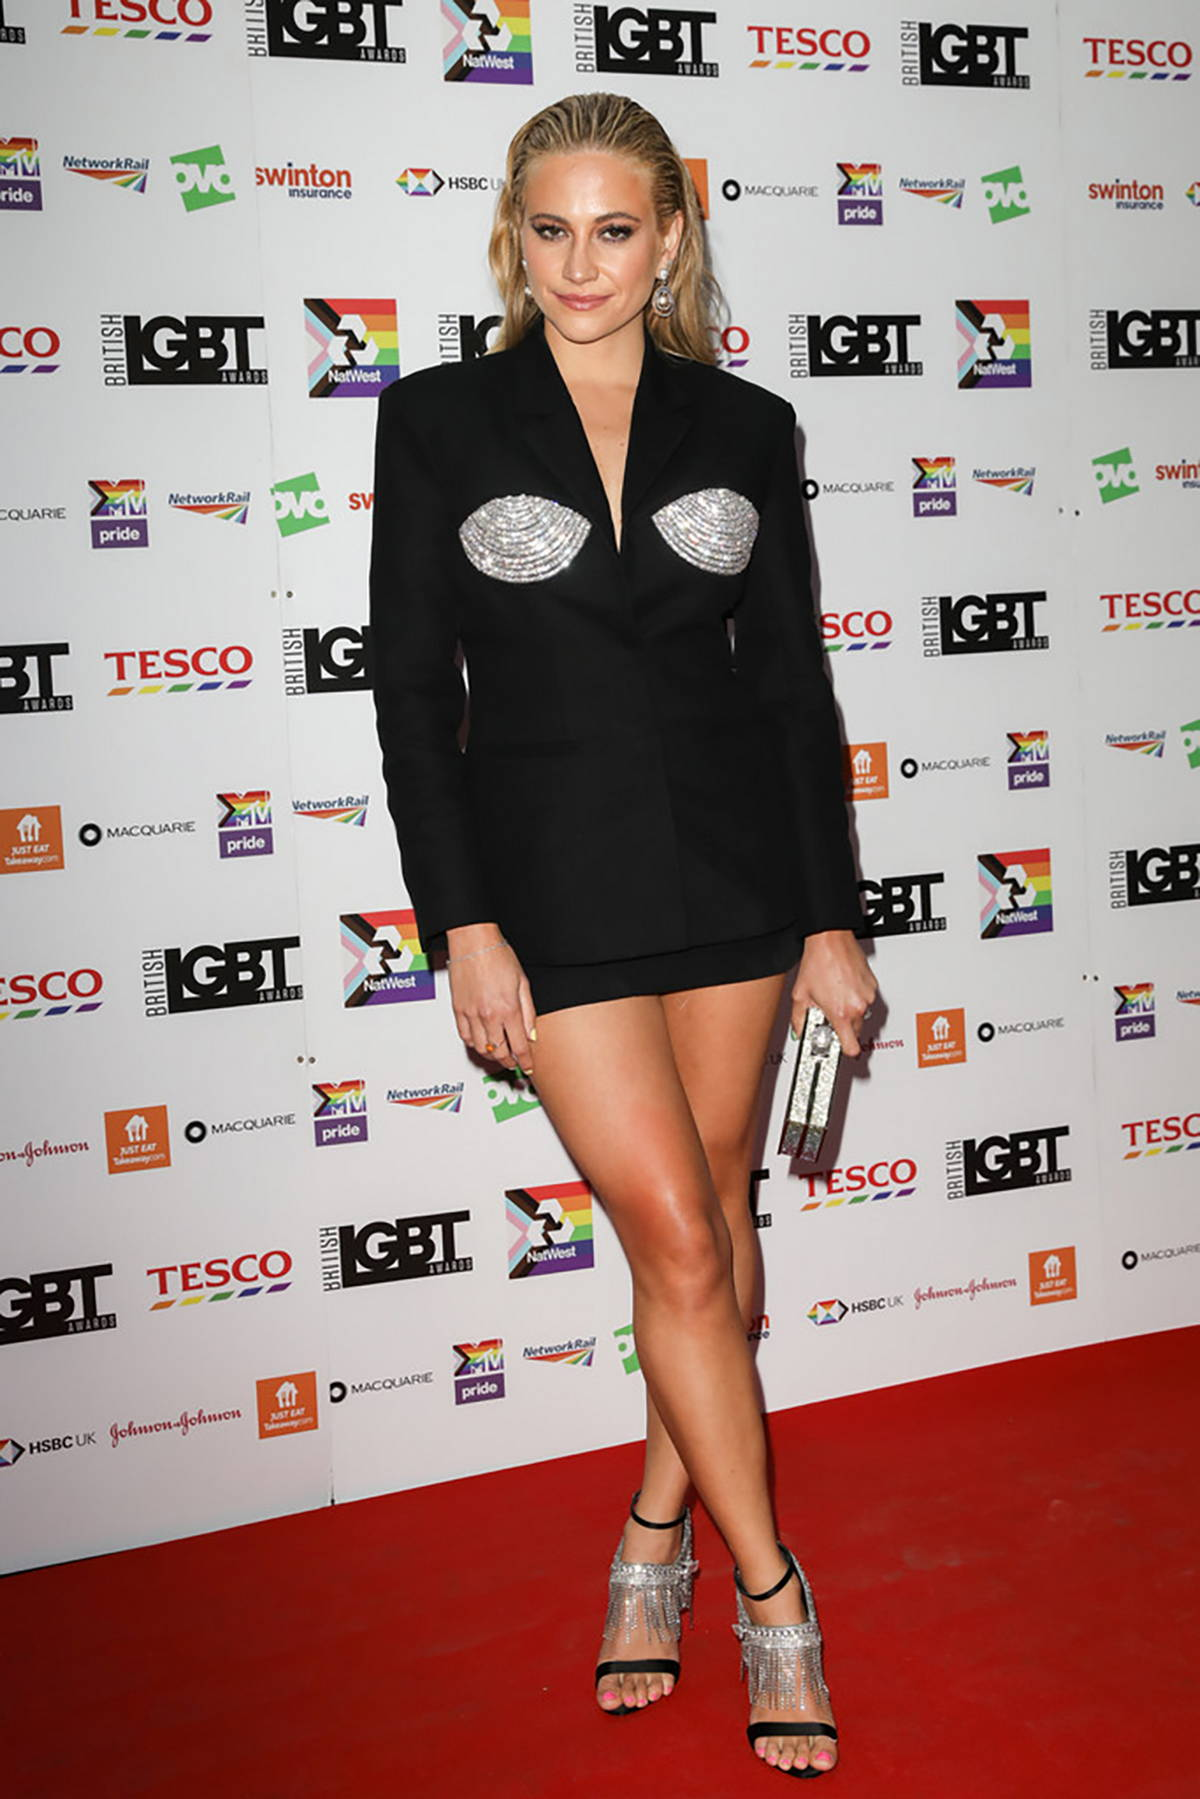 Pixie Lott attends the British LGBT Awards 2021 at The Brewery in London, UK